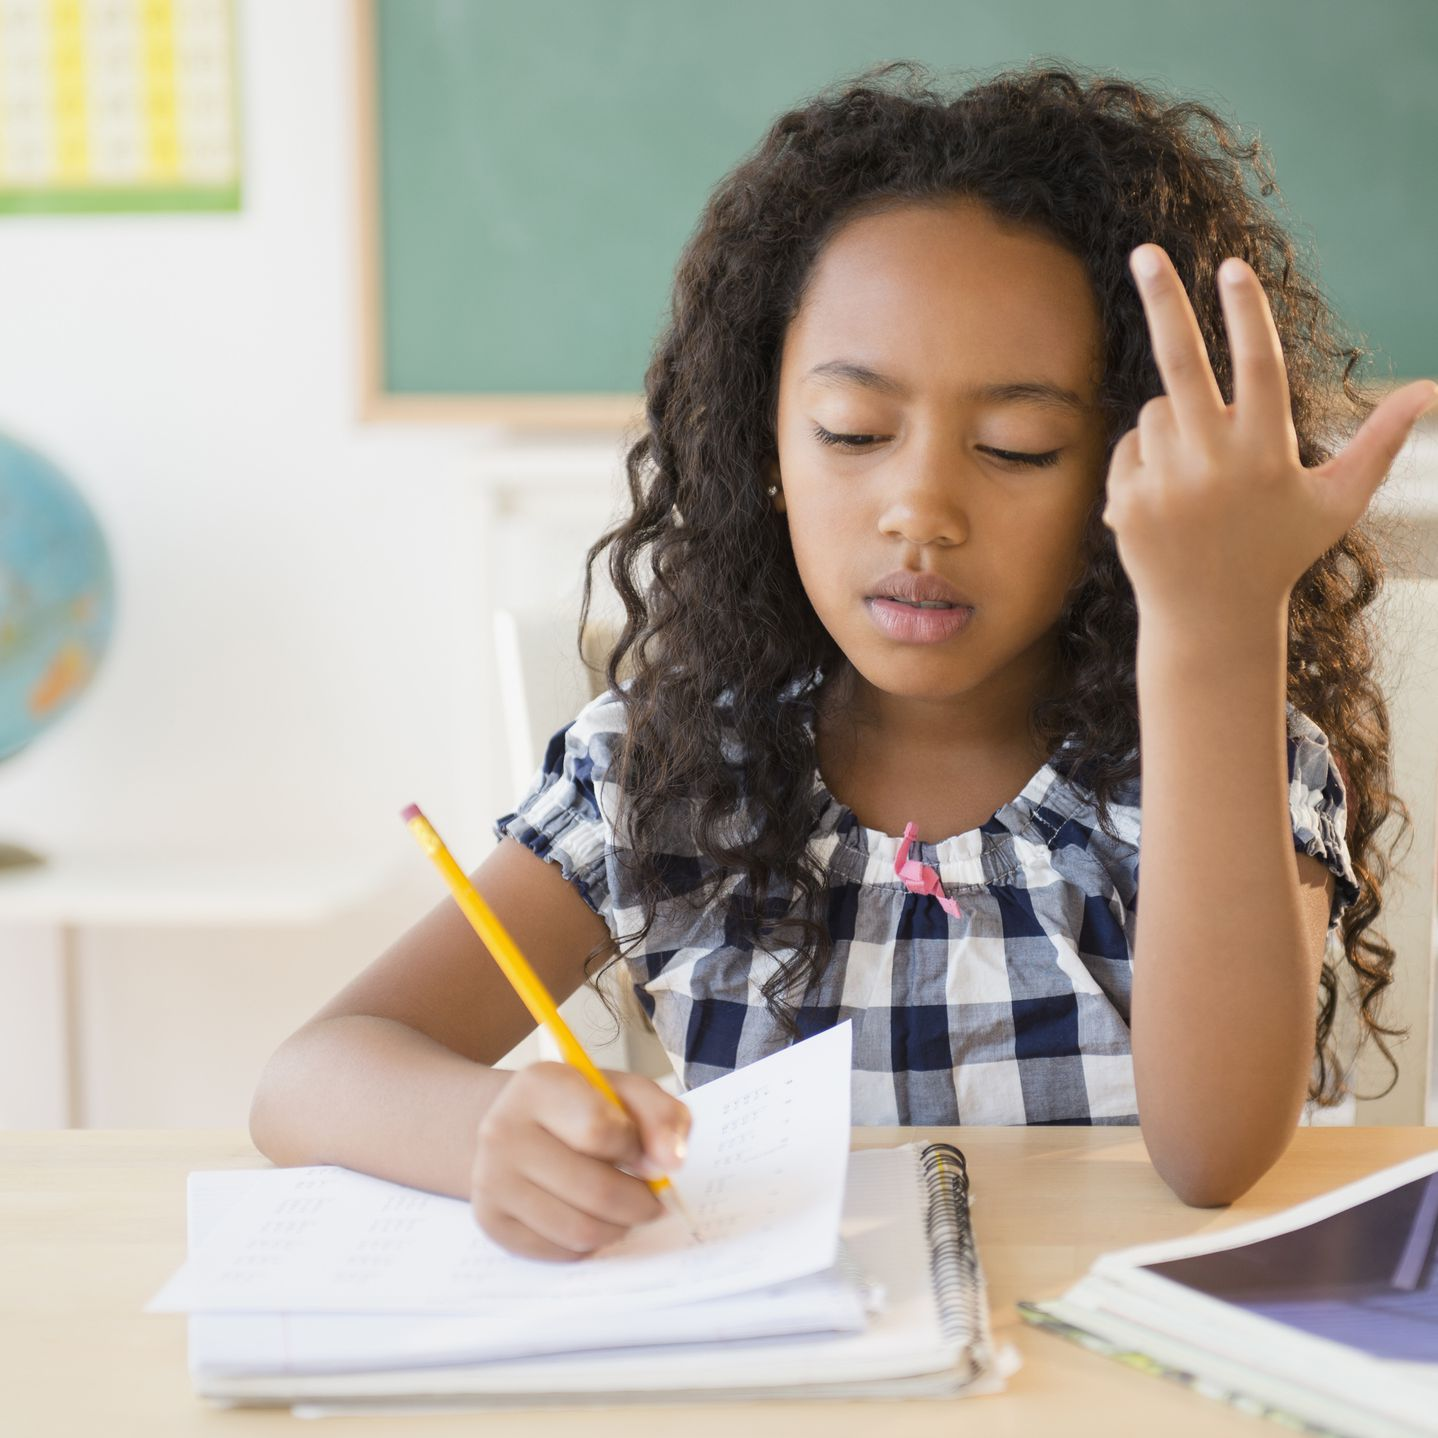 Signs of Dyscalculia at Home and in School